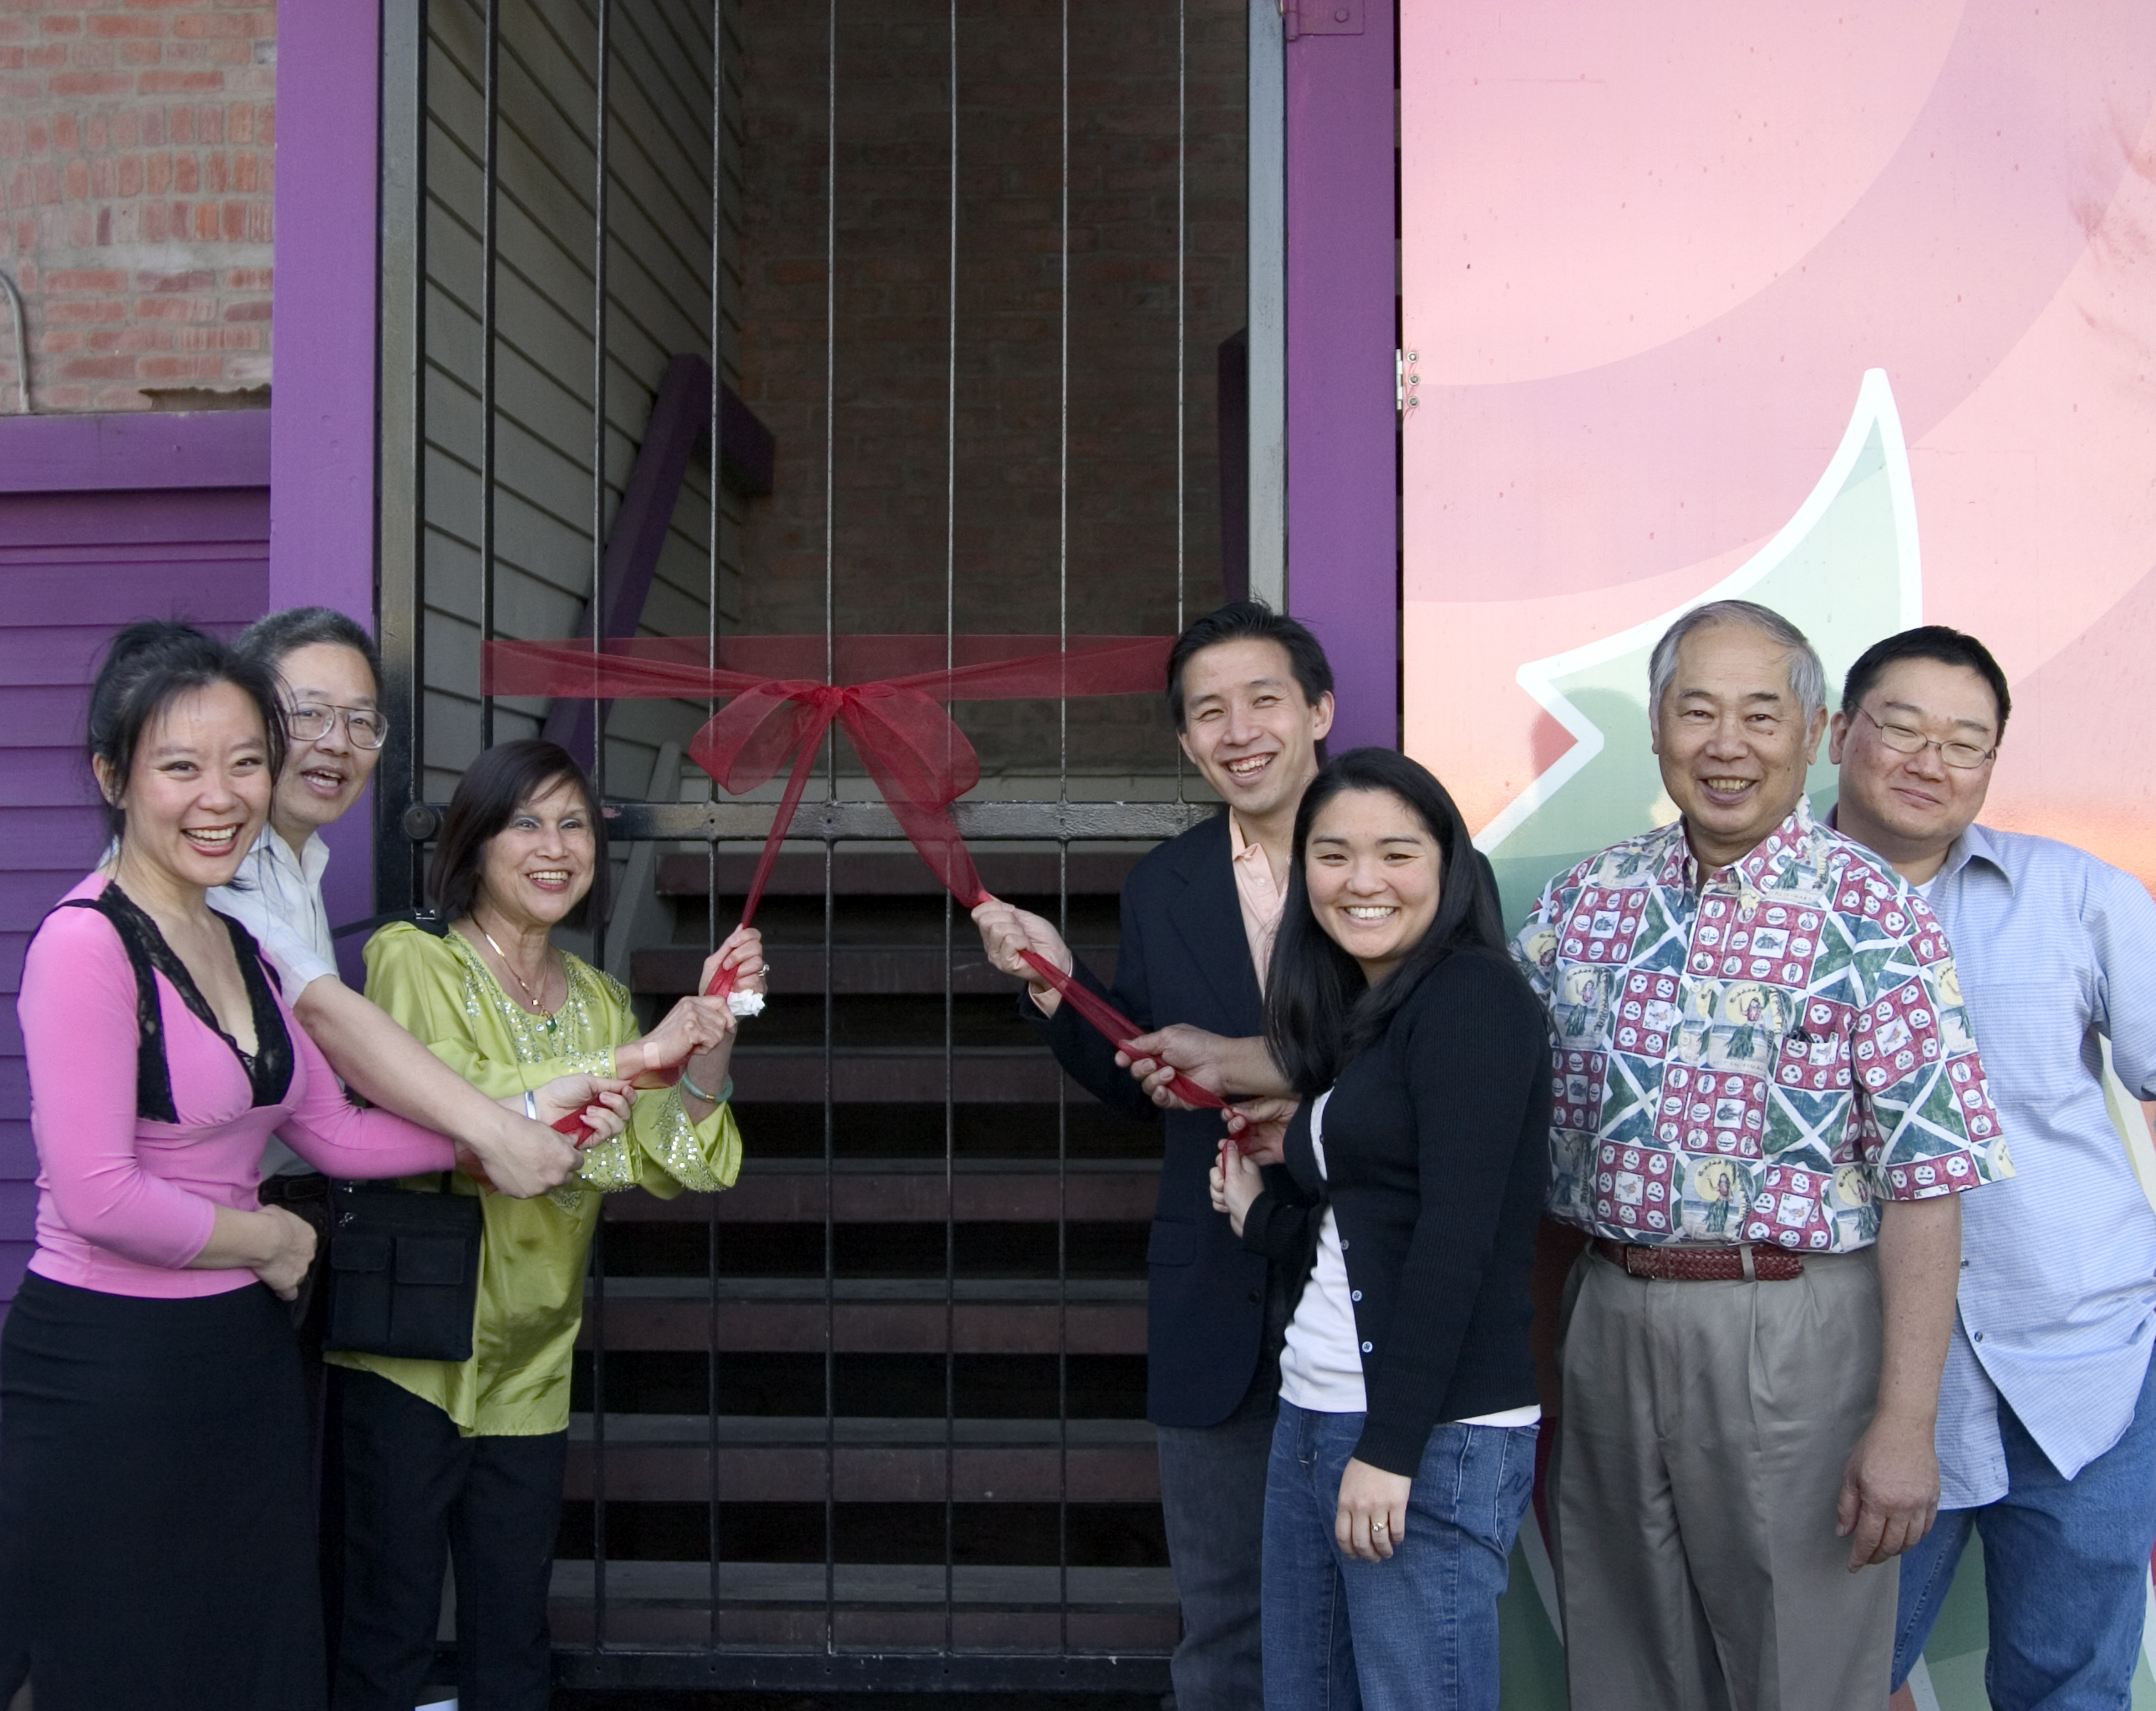 PRIMA VERA ARTS CENTER OPENS WITH A RIBBON CEREMONY""